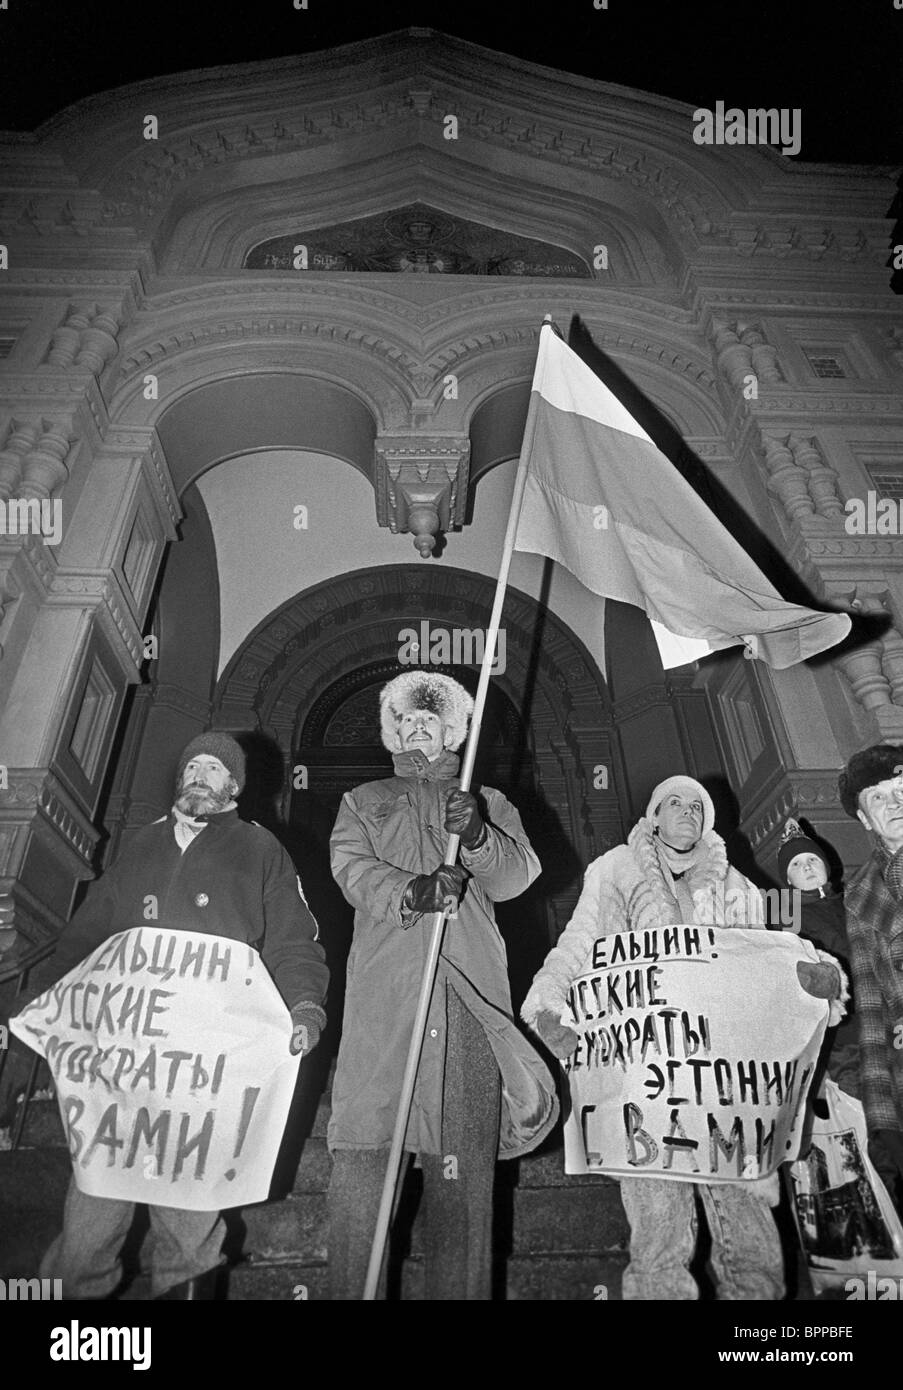 Picket against declaration signed in Estonia, 1991 - Stock Image